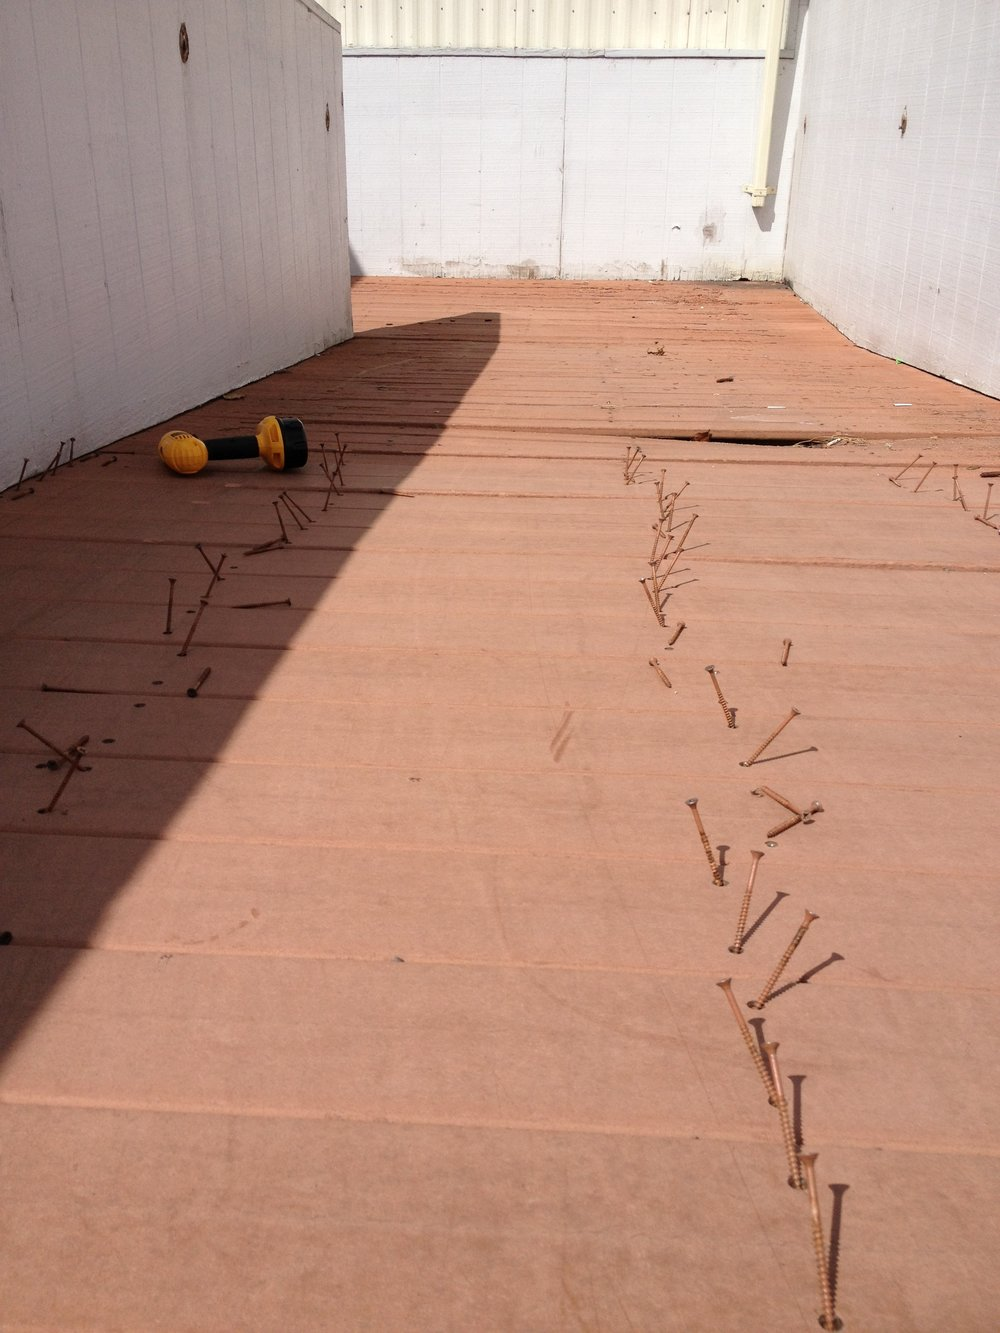 Composite decking was removed from a Delta Airlines maintenance facility at Honolulu International Airport.  The decking boards were flipped over and reused to compose new decks for Haleola'ili'ainapono.